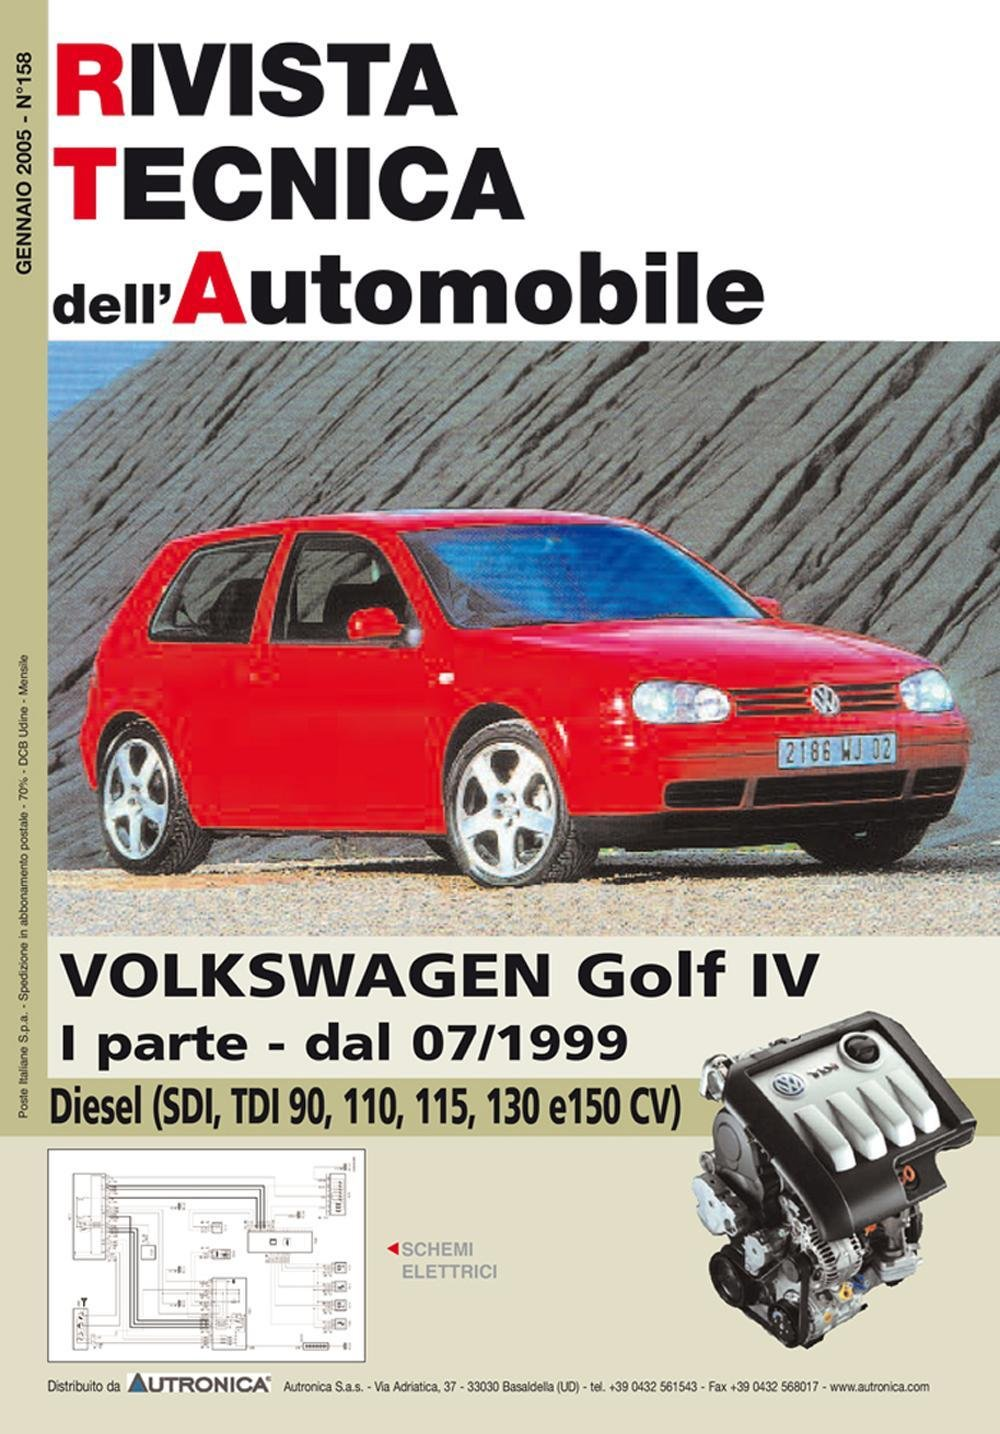 Schemi Elettrici Golf : Amazon.it: volkswagen golf iv 1.9 sdi tdi 90 110 115 130 e 150 cv 1a